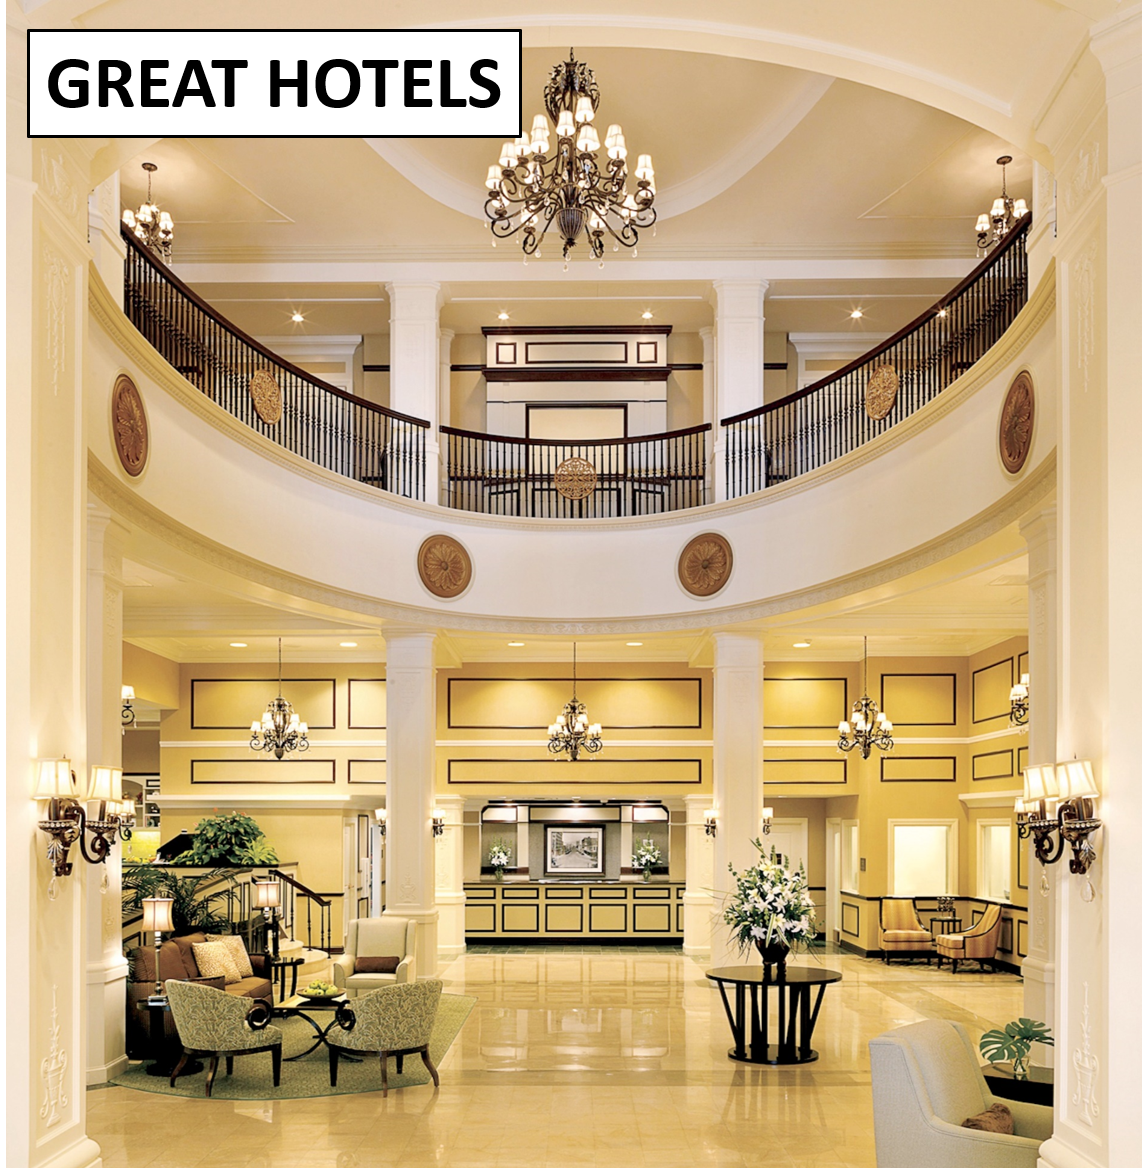 Great hotels